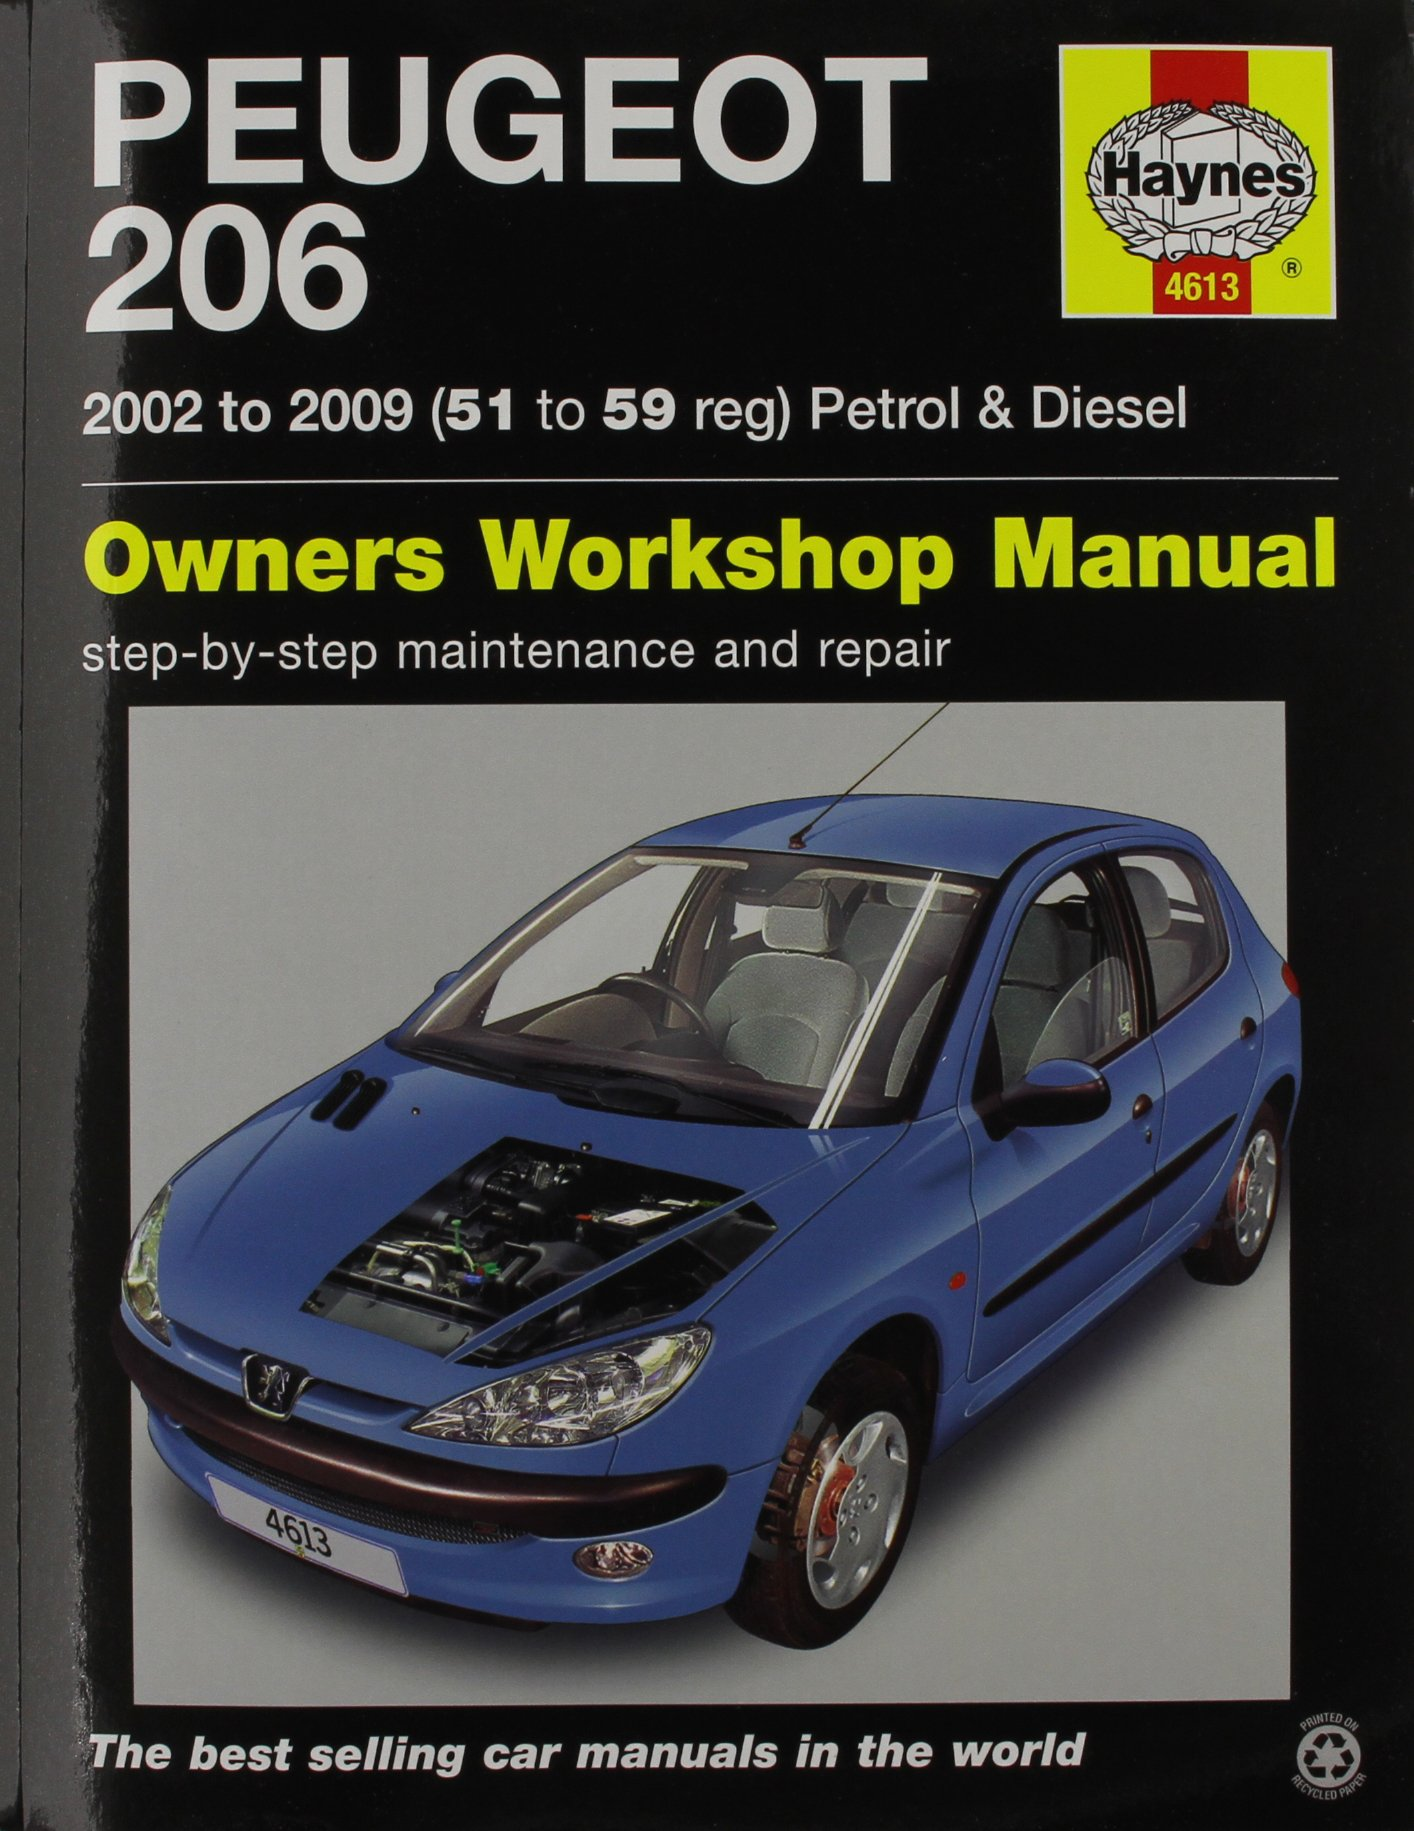 Peugeot 206 workshop manual pdf download | peatix.